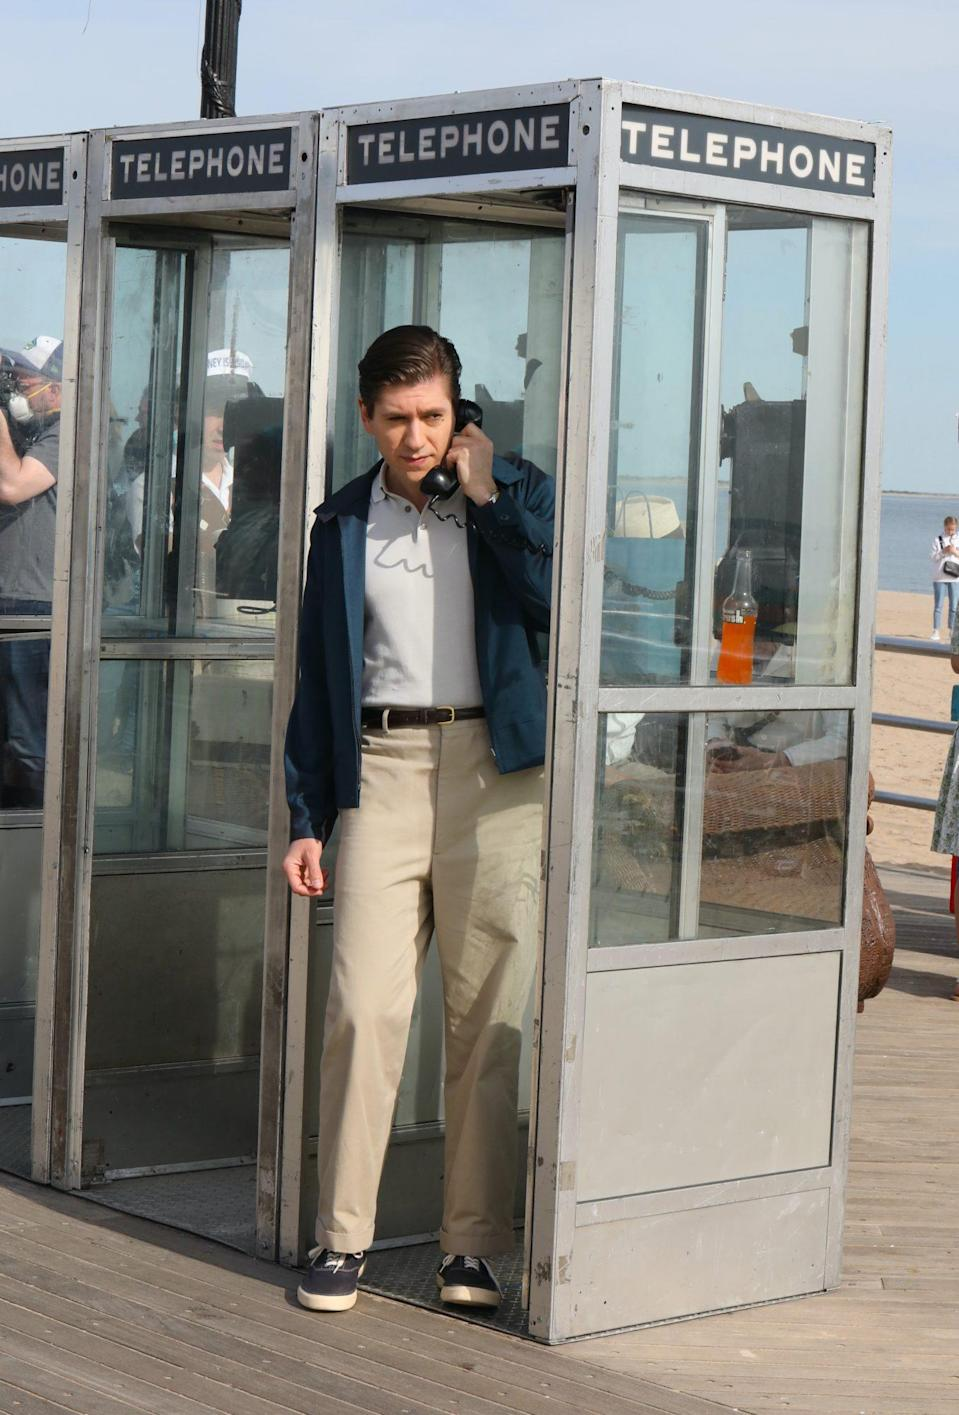 <p>Zegen popped into a vintage payphone booth while filming at Coney Island on May 7. </p>